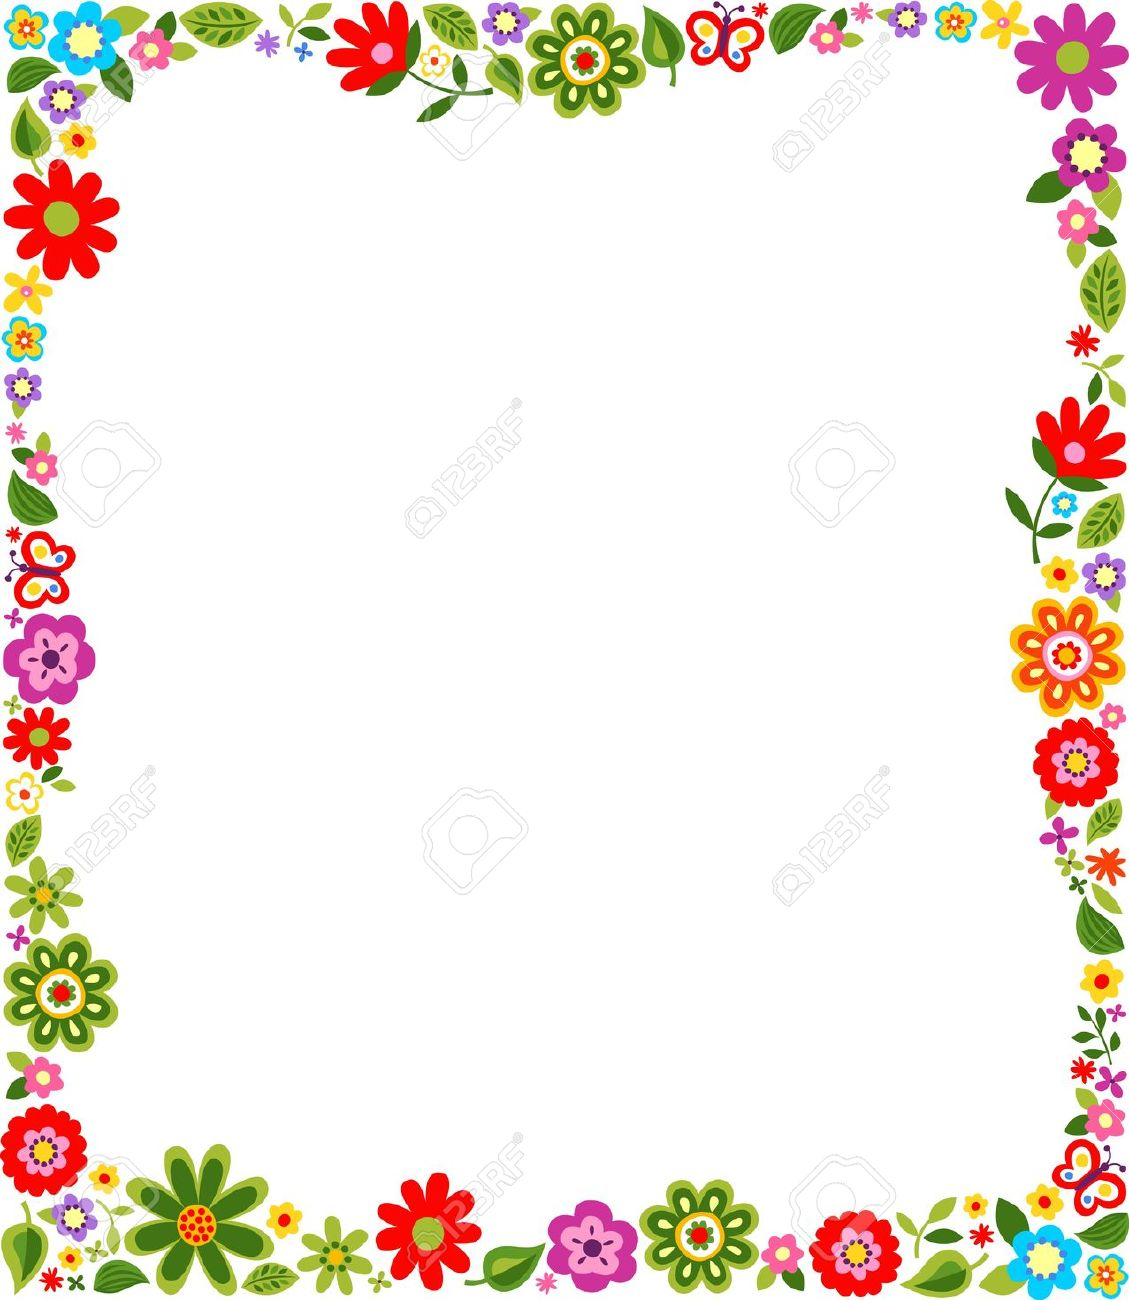 clipart flower borders and frames #16